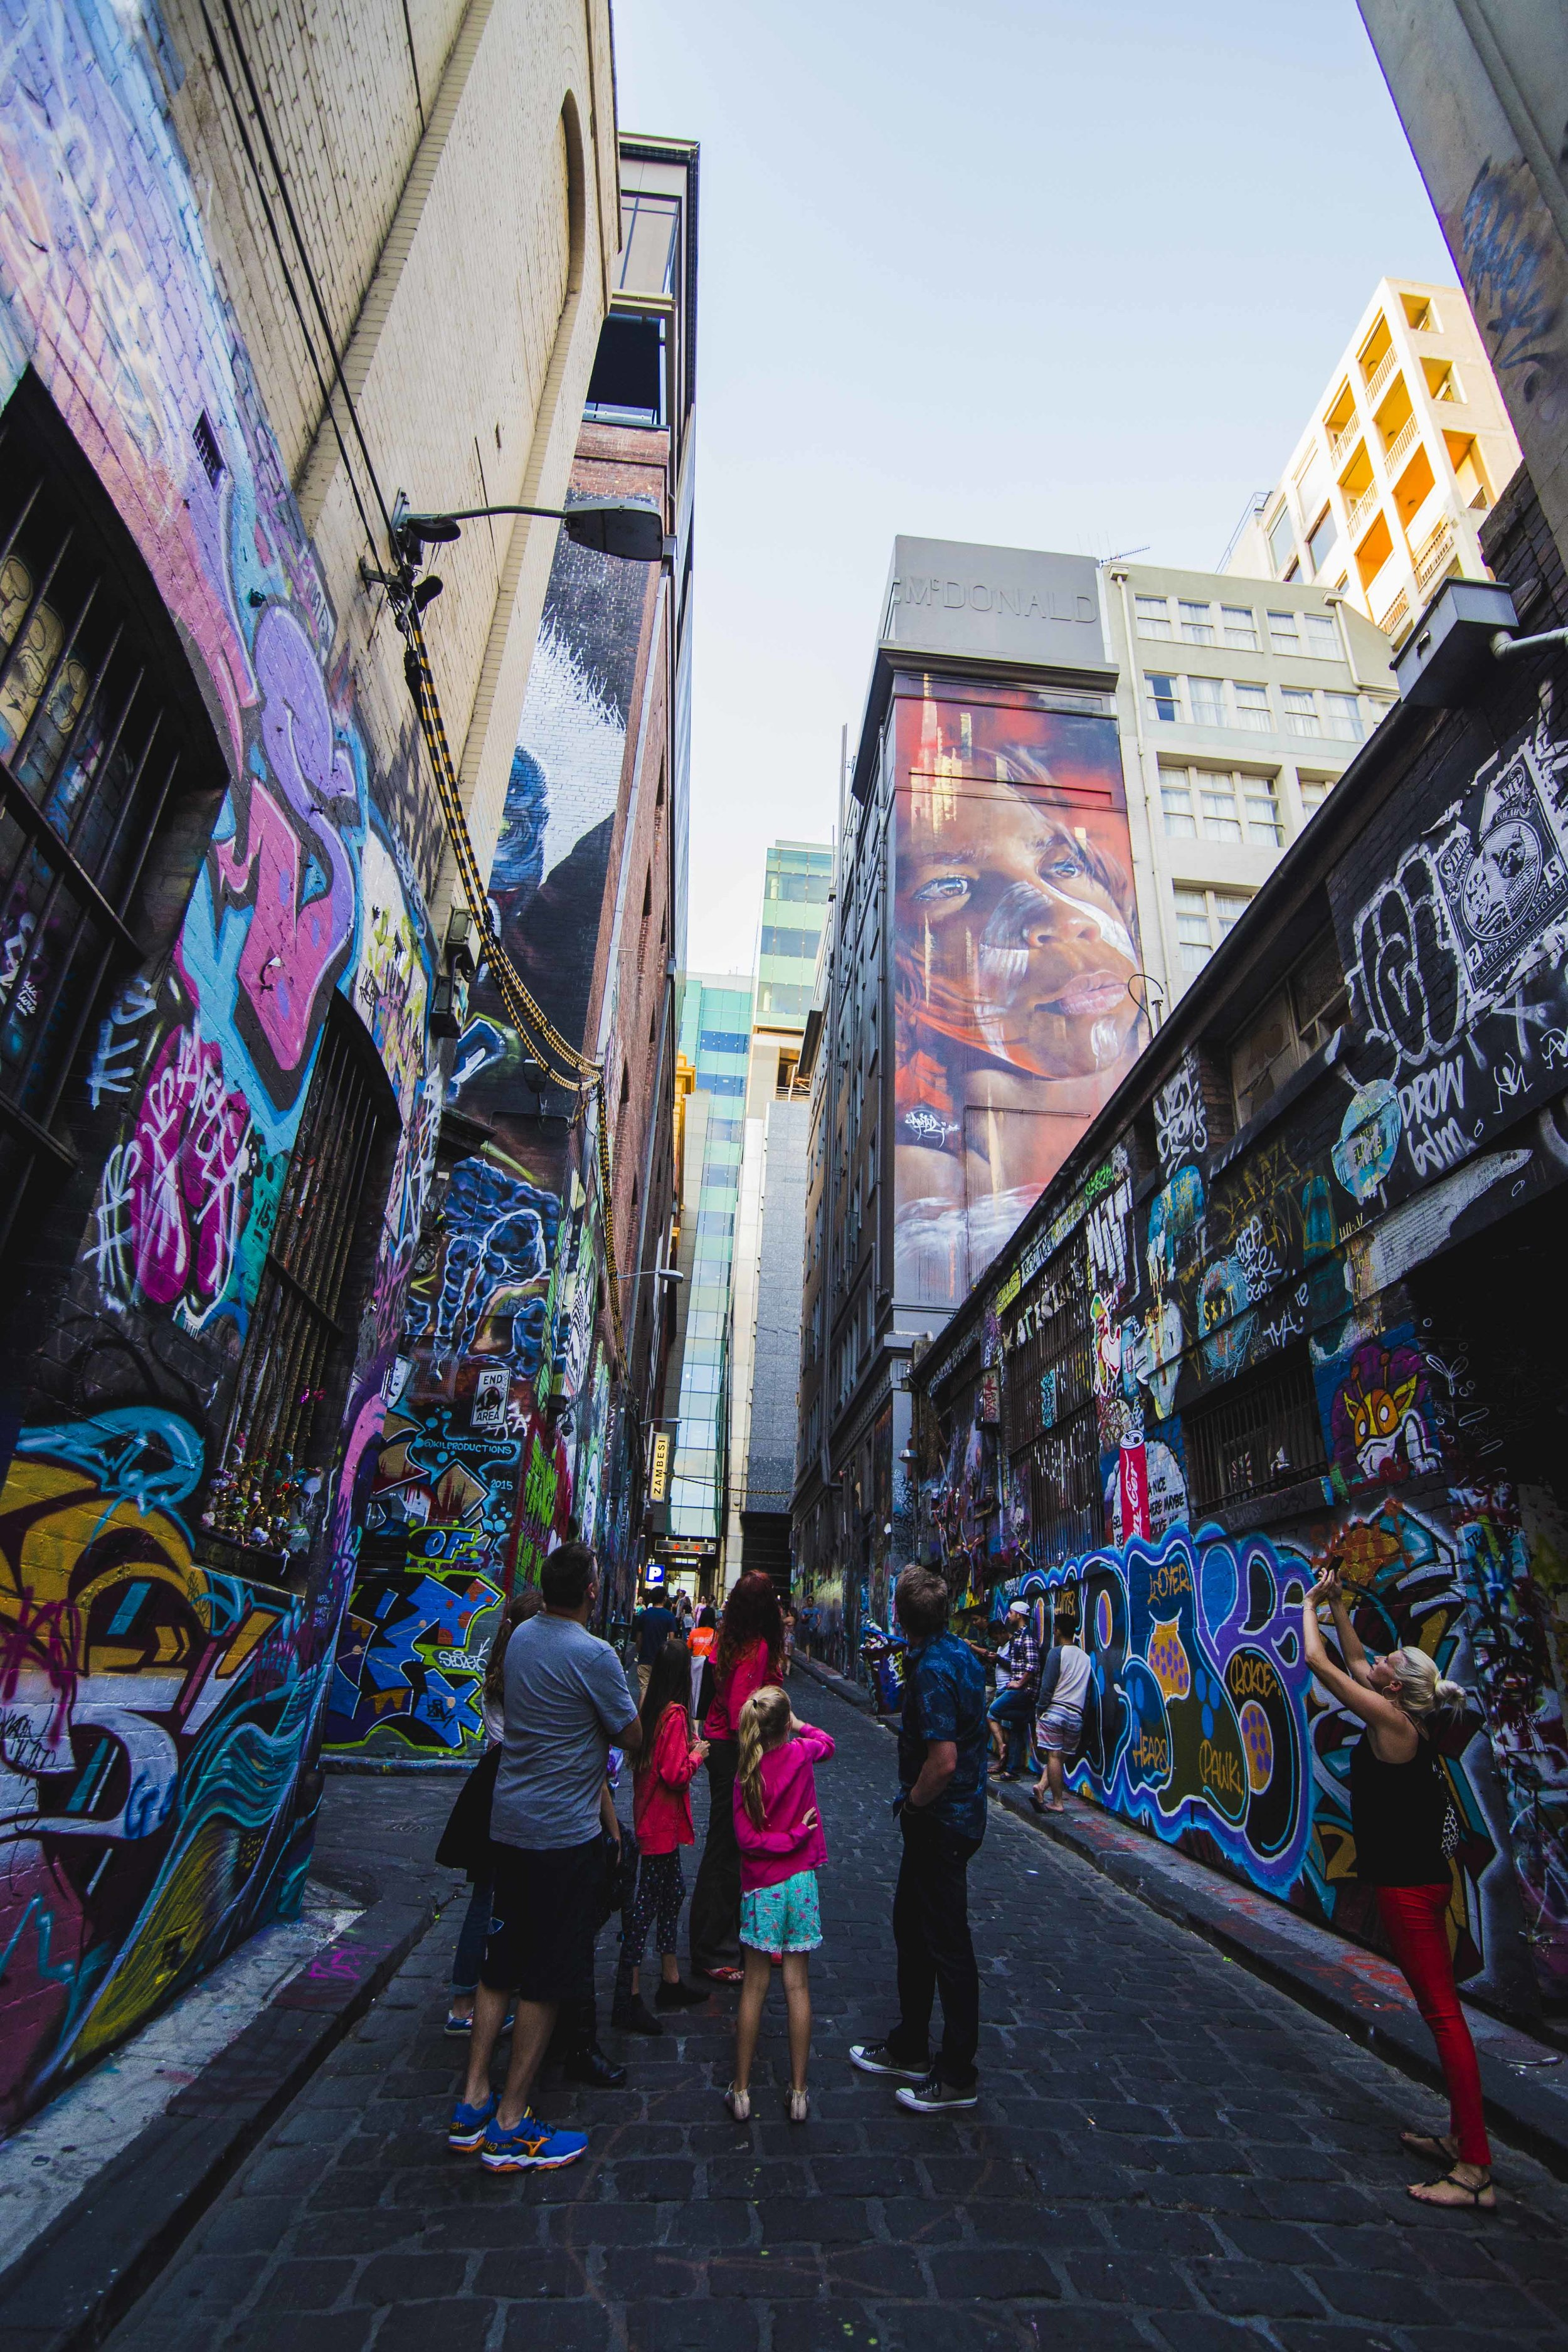 Streets full of tags in Melbourne. Photo: Marine Raynard